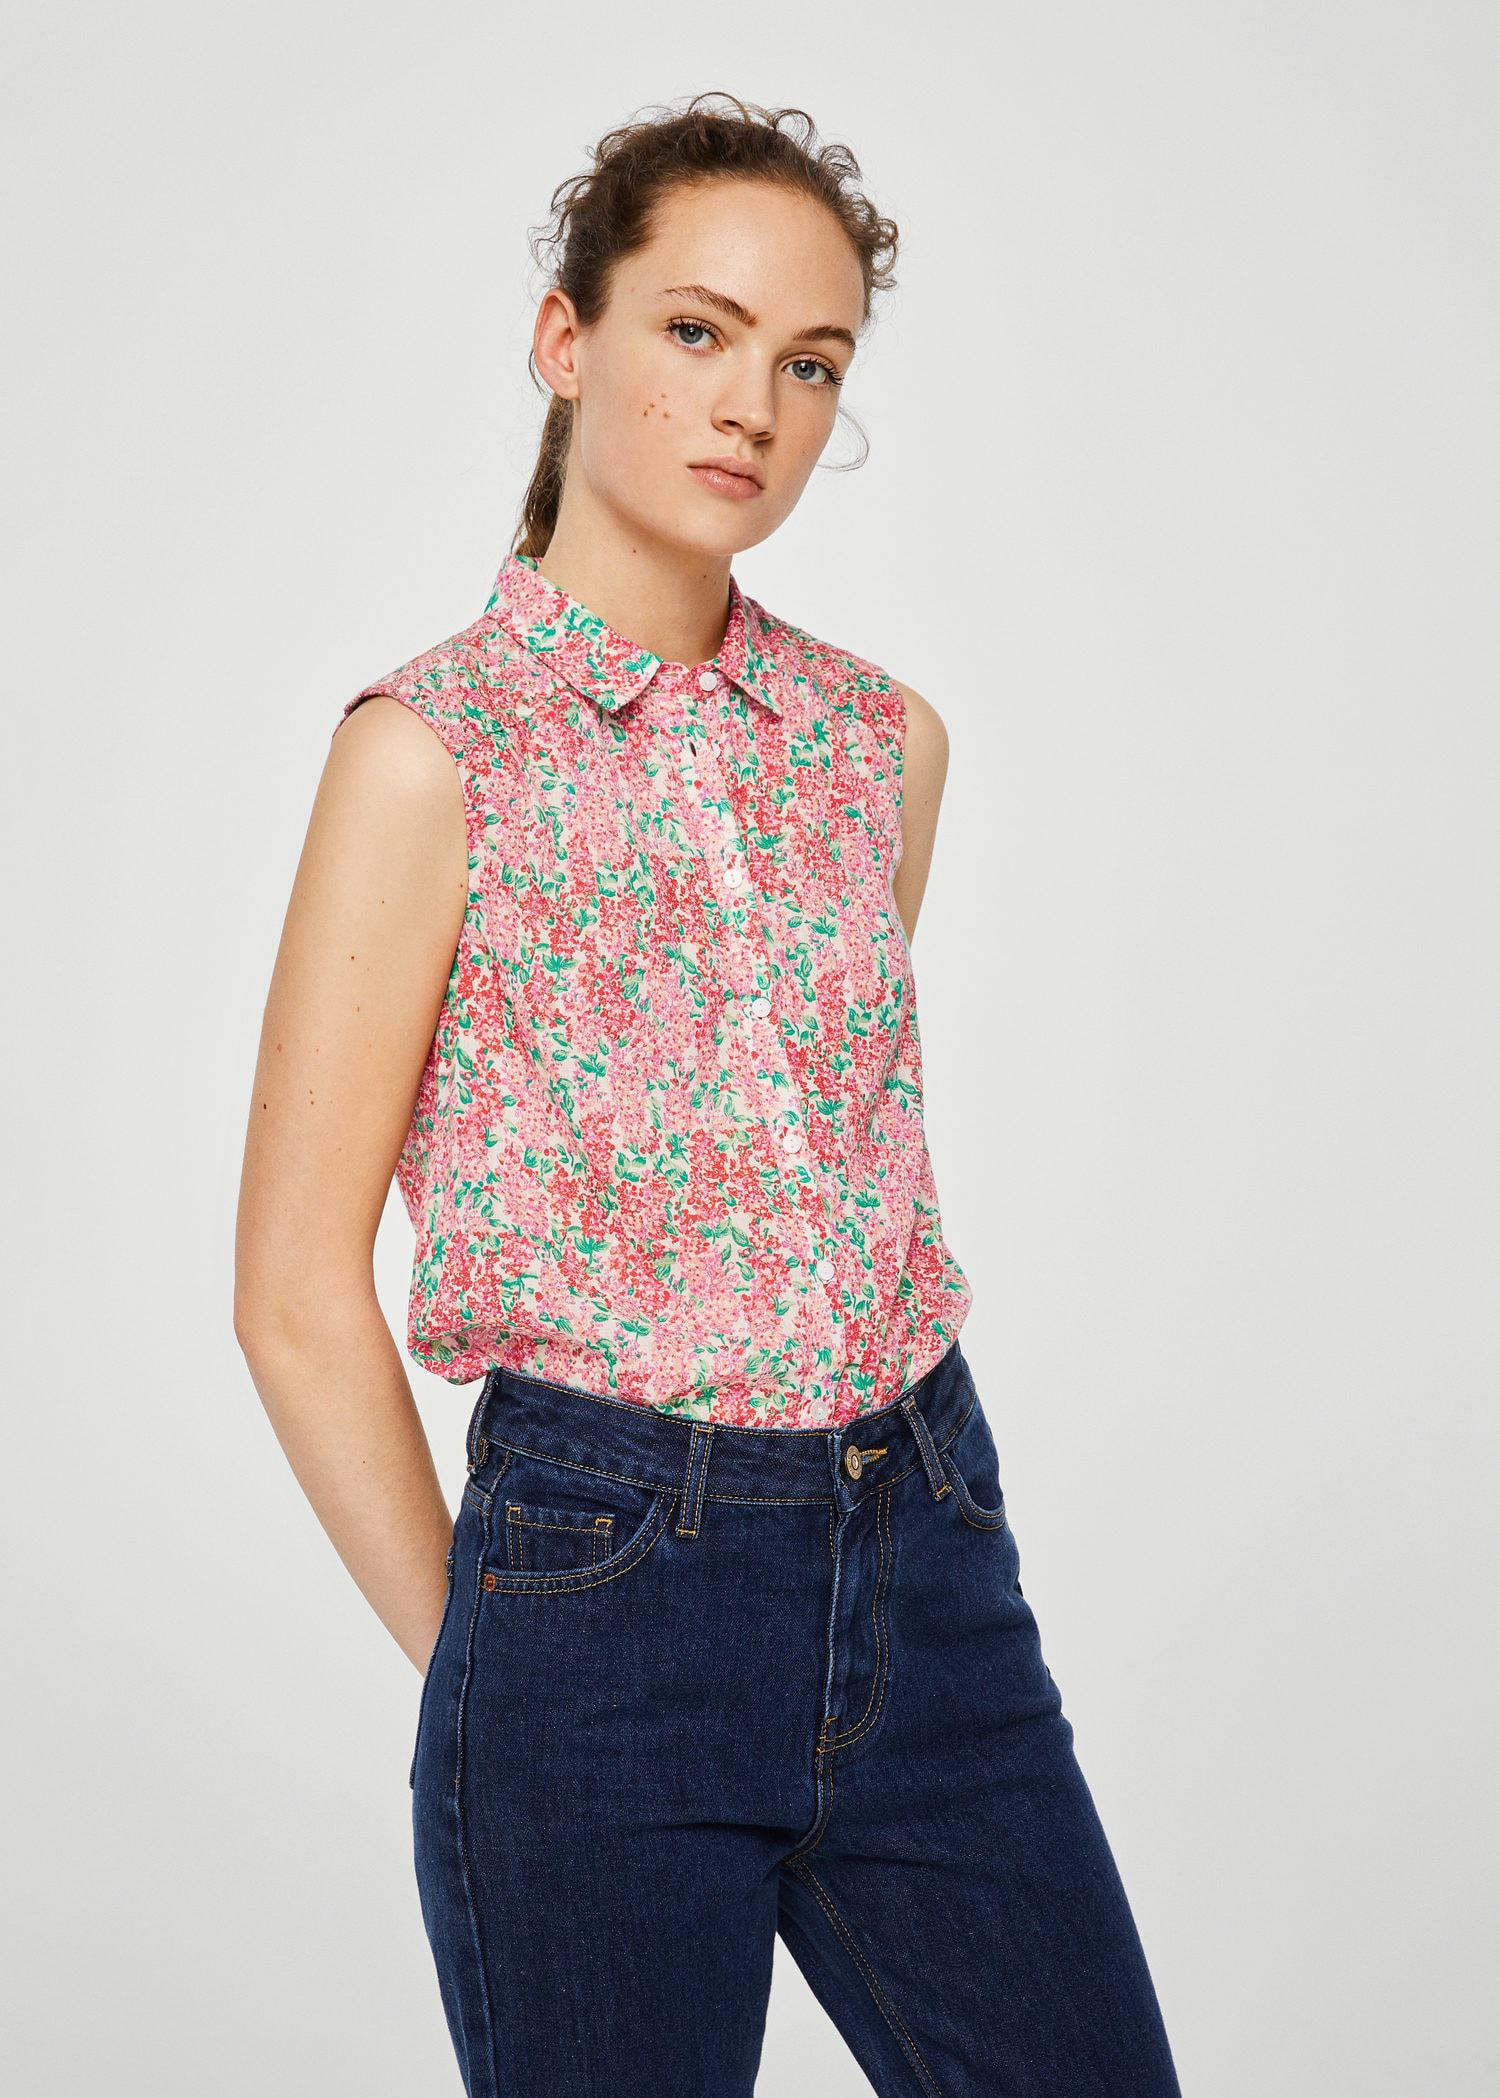 Lyst - Mango Floral Print Blouse in Pink eb631fc1a